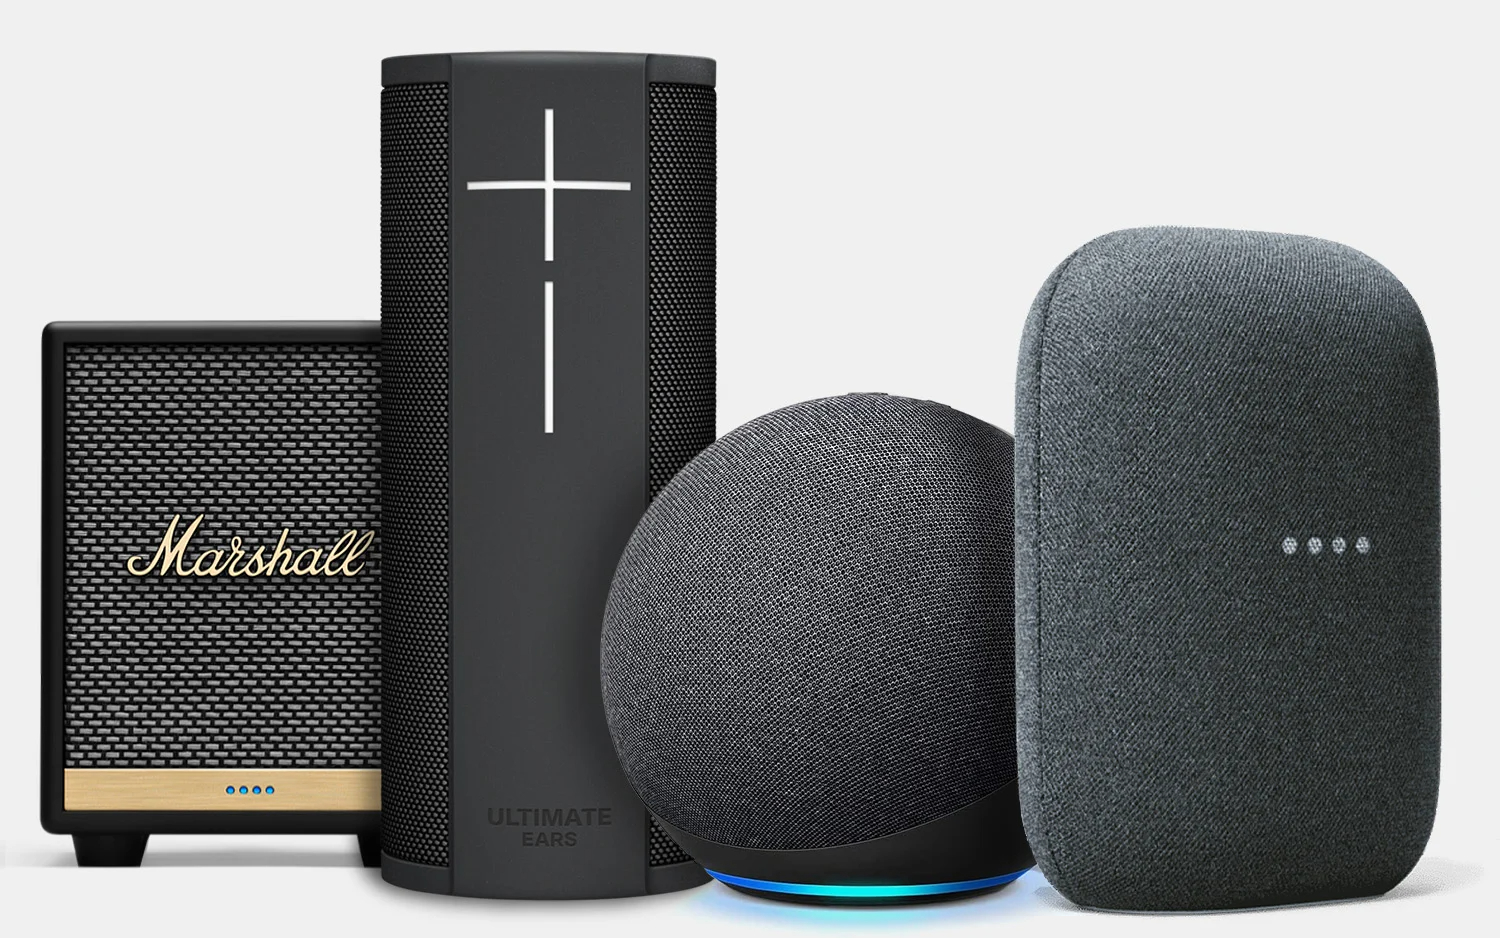 Best Smart Speakers For Listening To Spotify